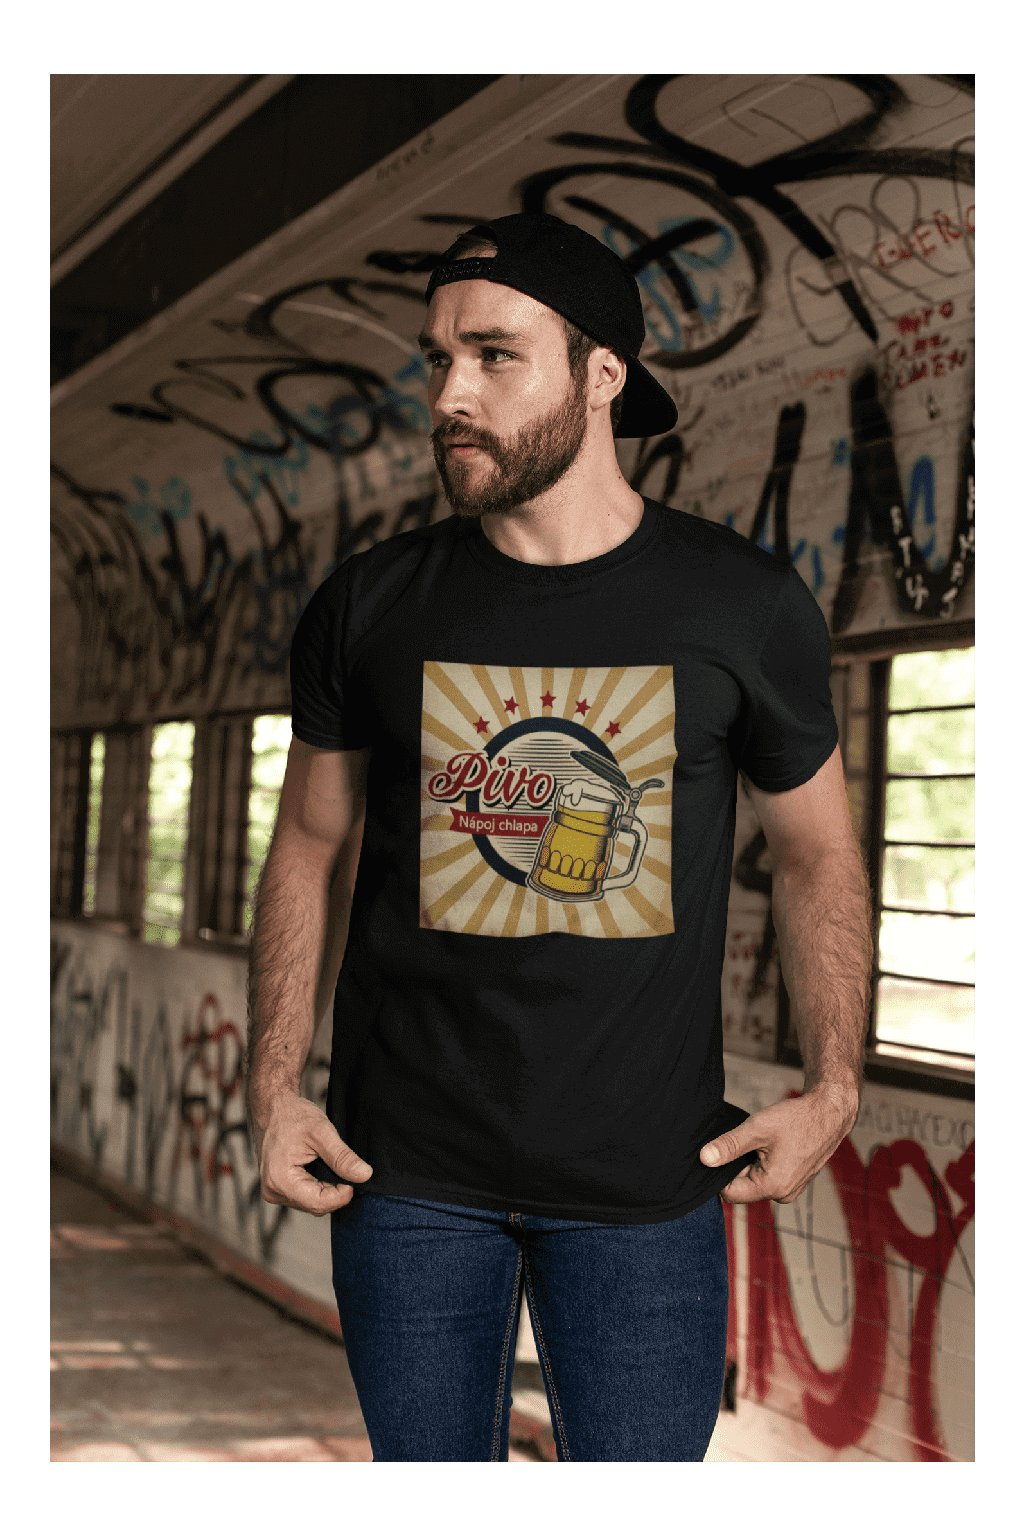 t shirt mockup featuring a bearded man with a cap by a graffiti wall 28194 (10)